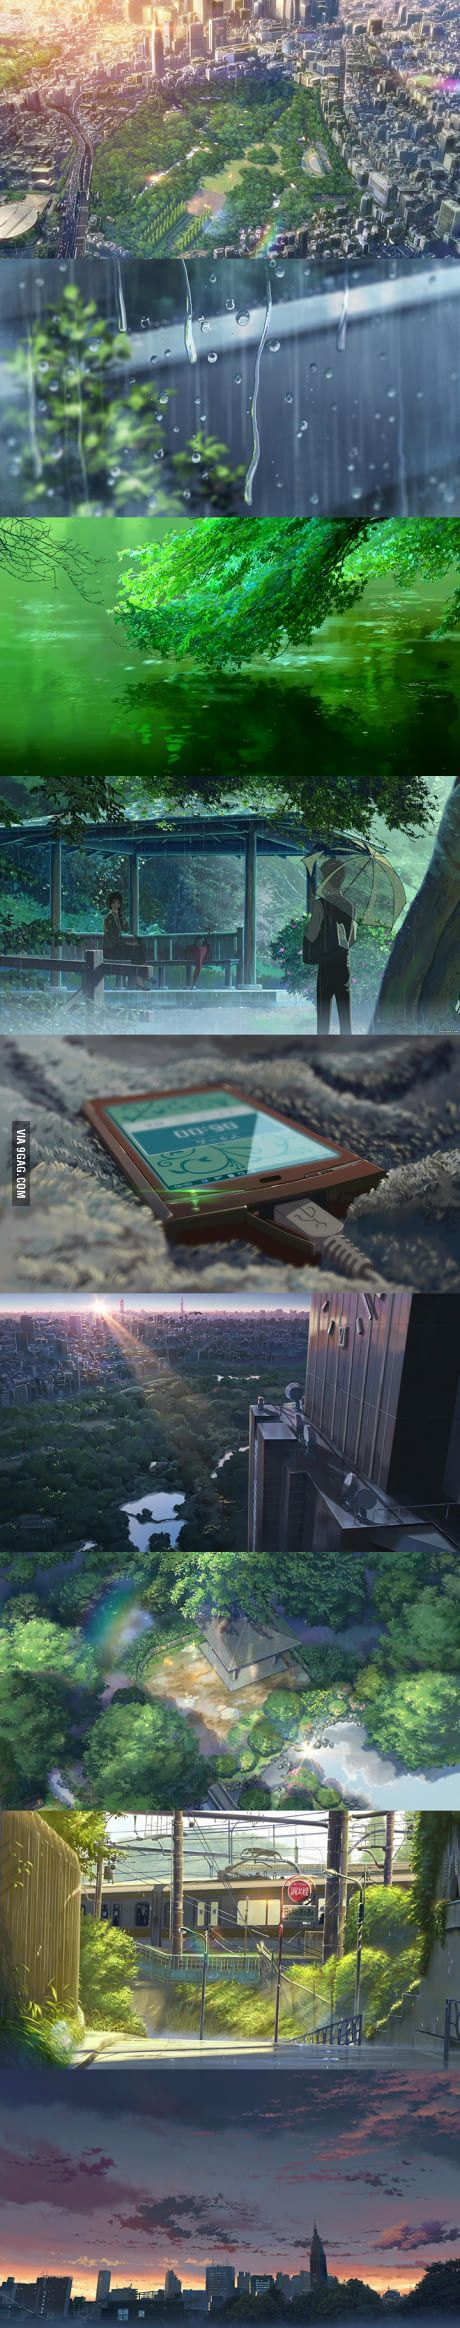 The Amazing Visuals Of Garden Of Words (anime Movie) | Illustrationsinspiration | Pinterest